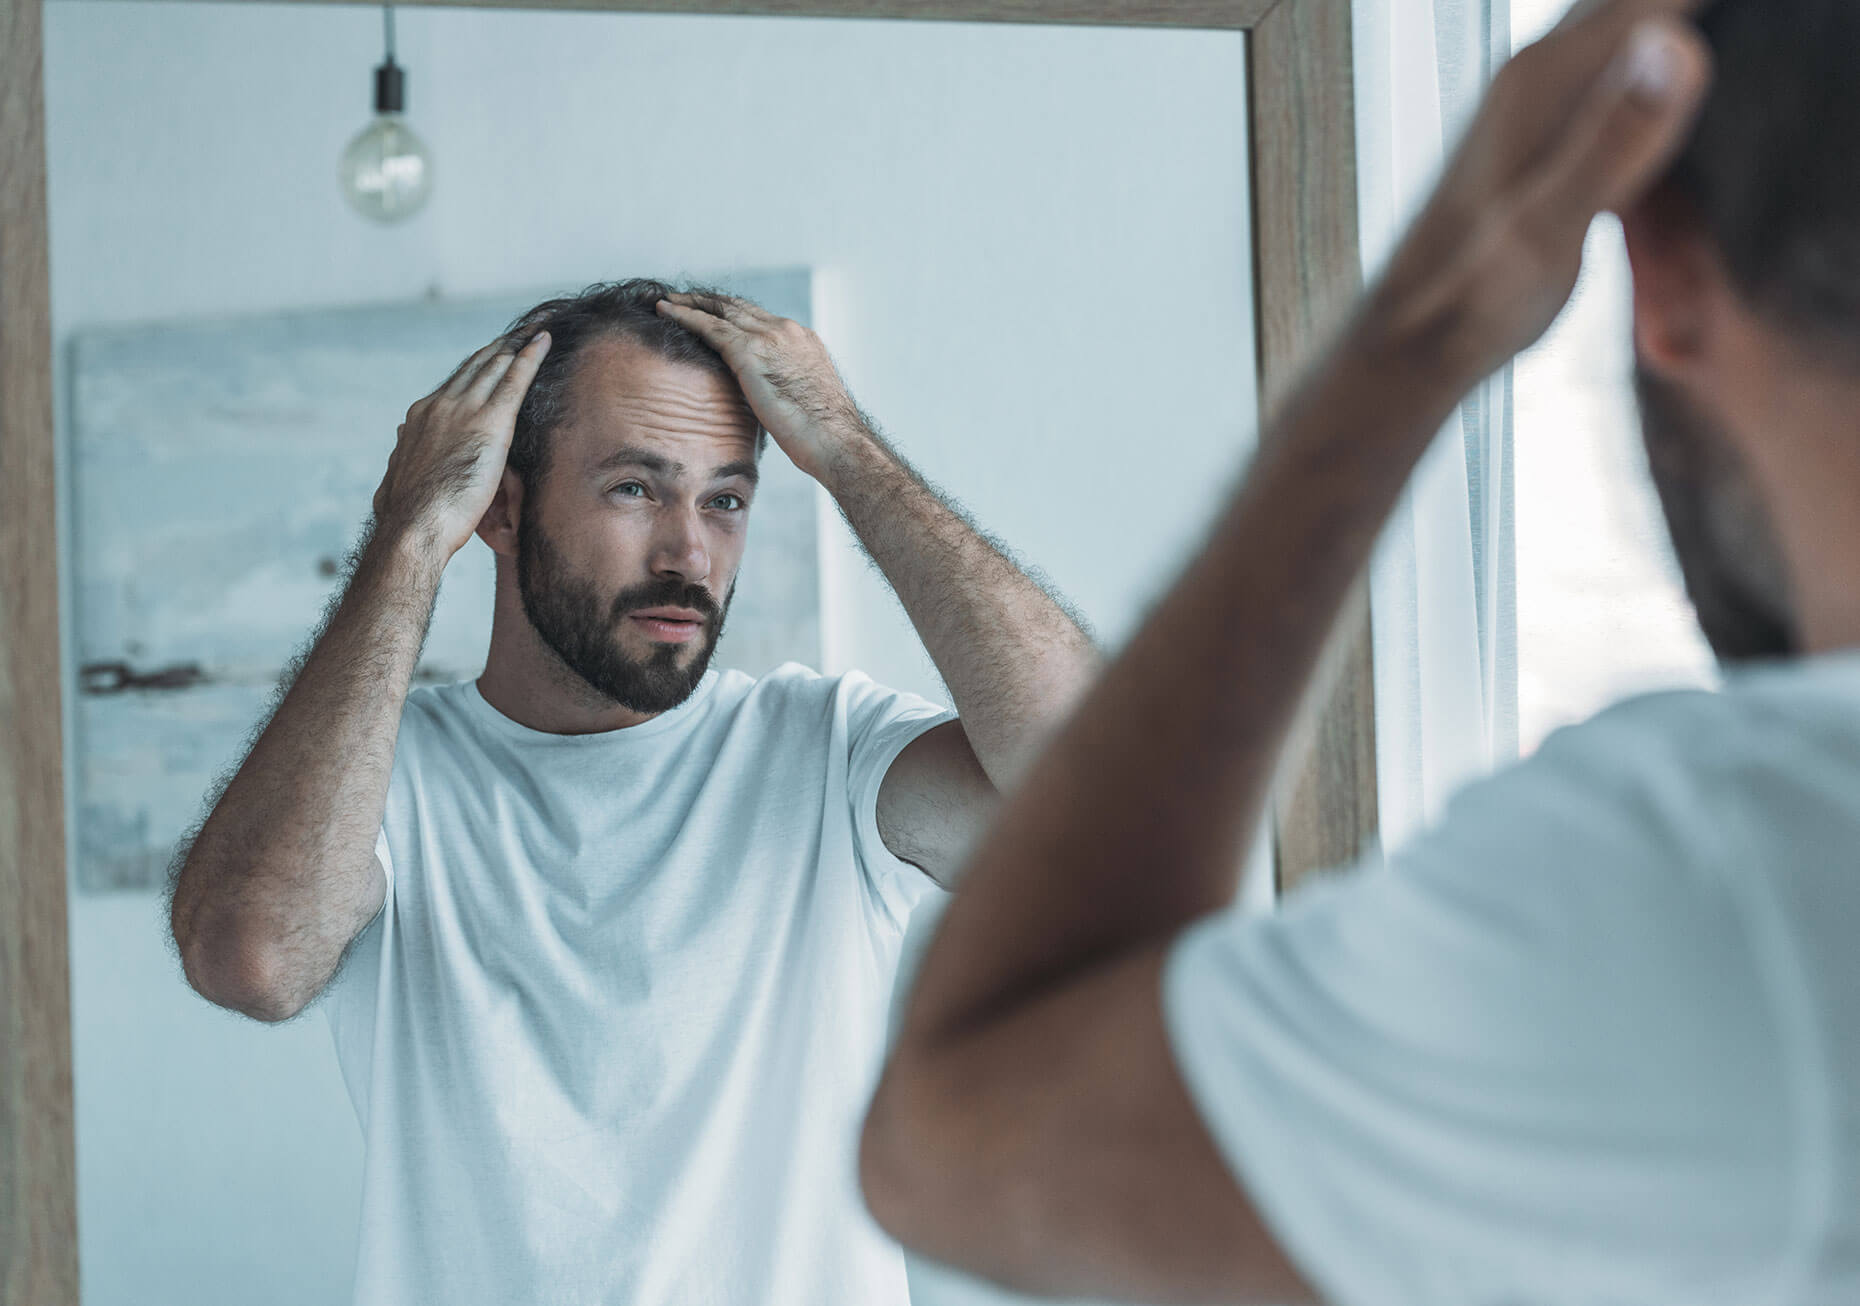 A man inspecting his hairline in the mirror